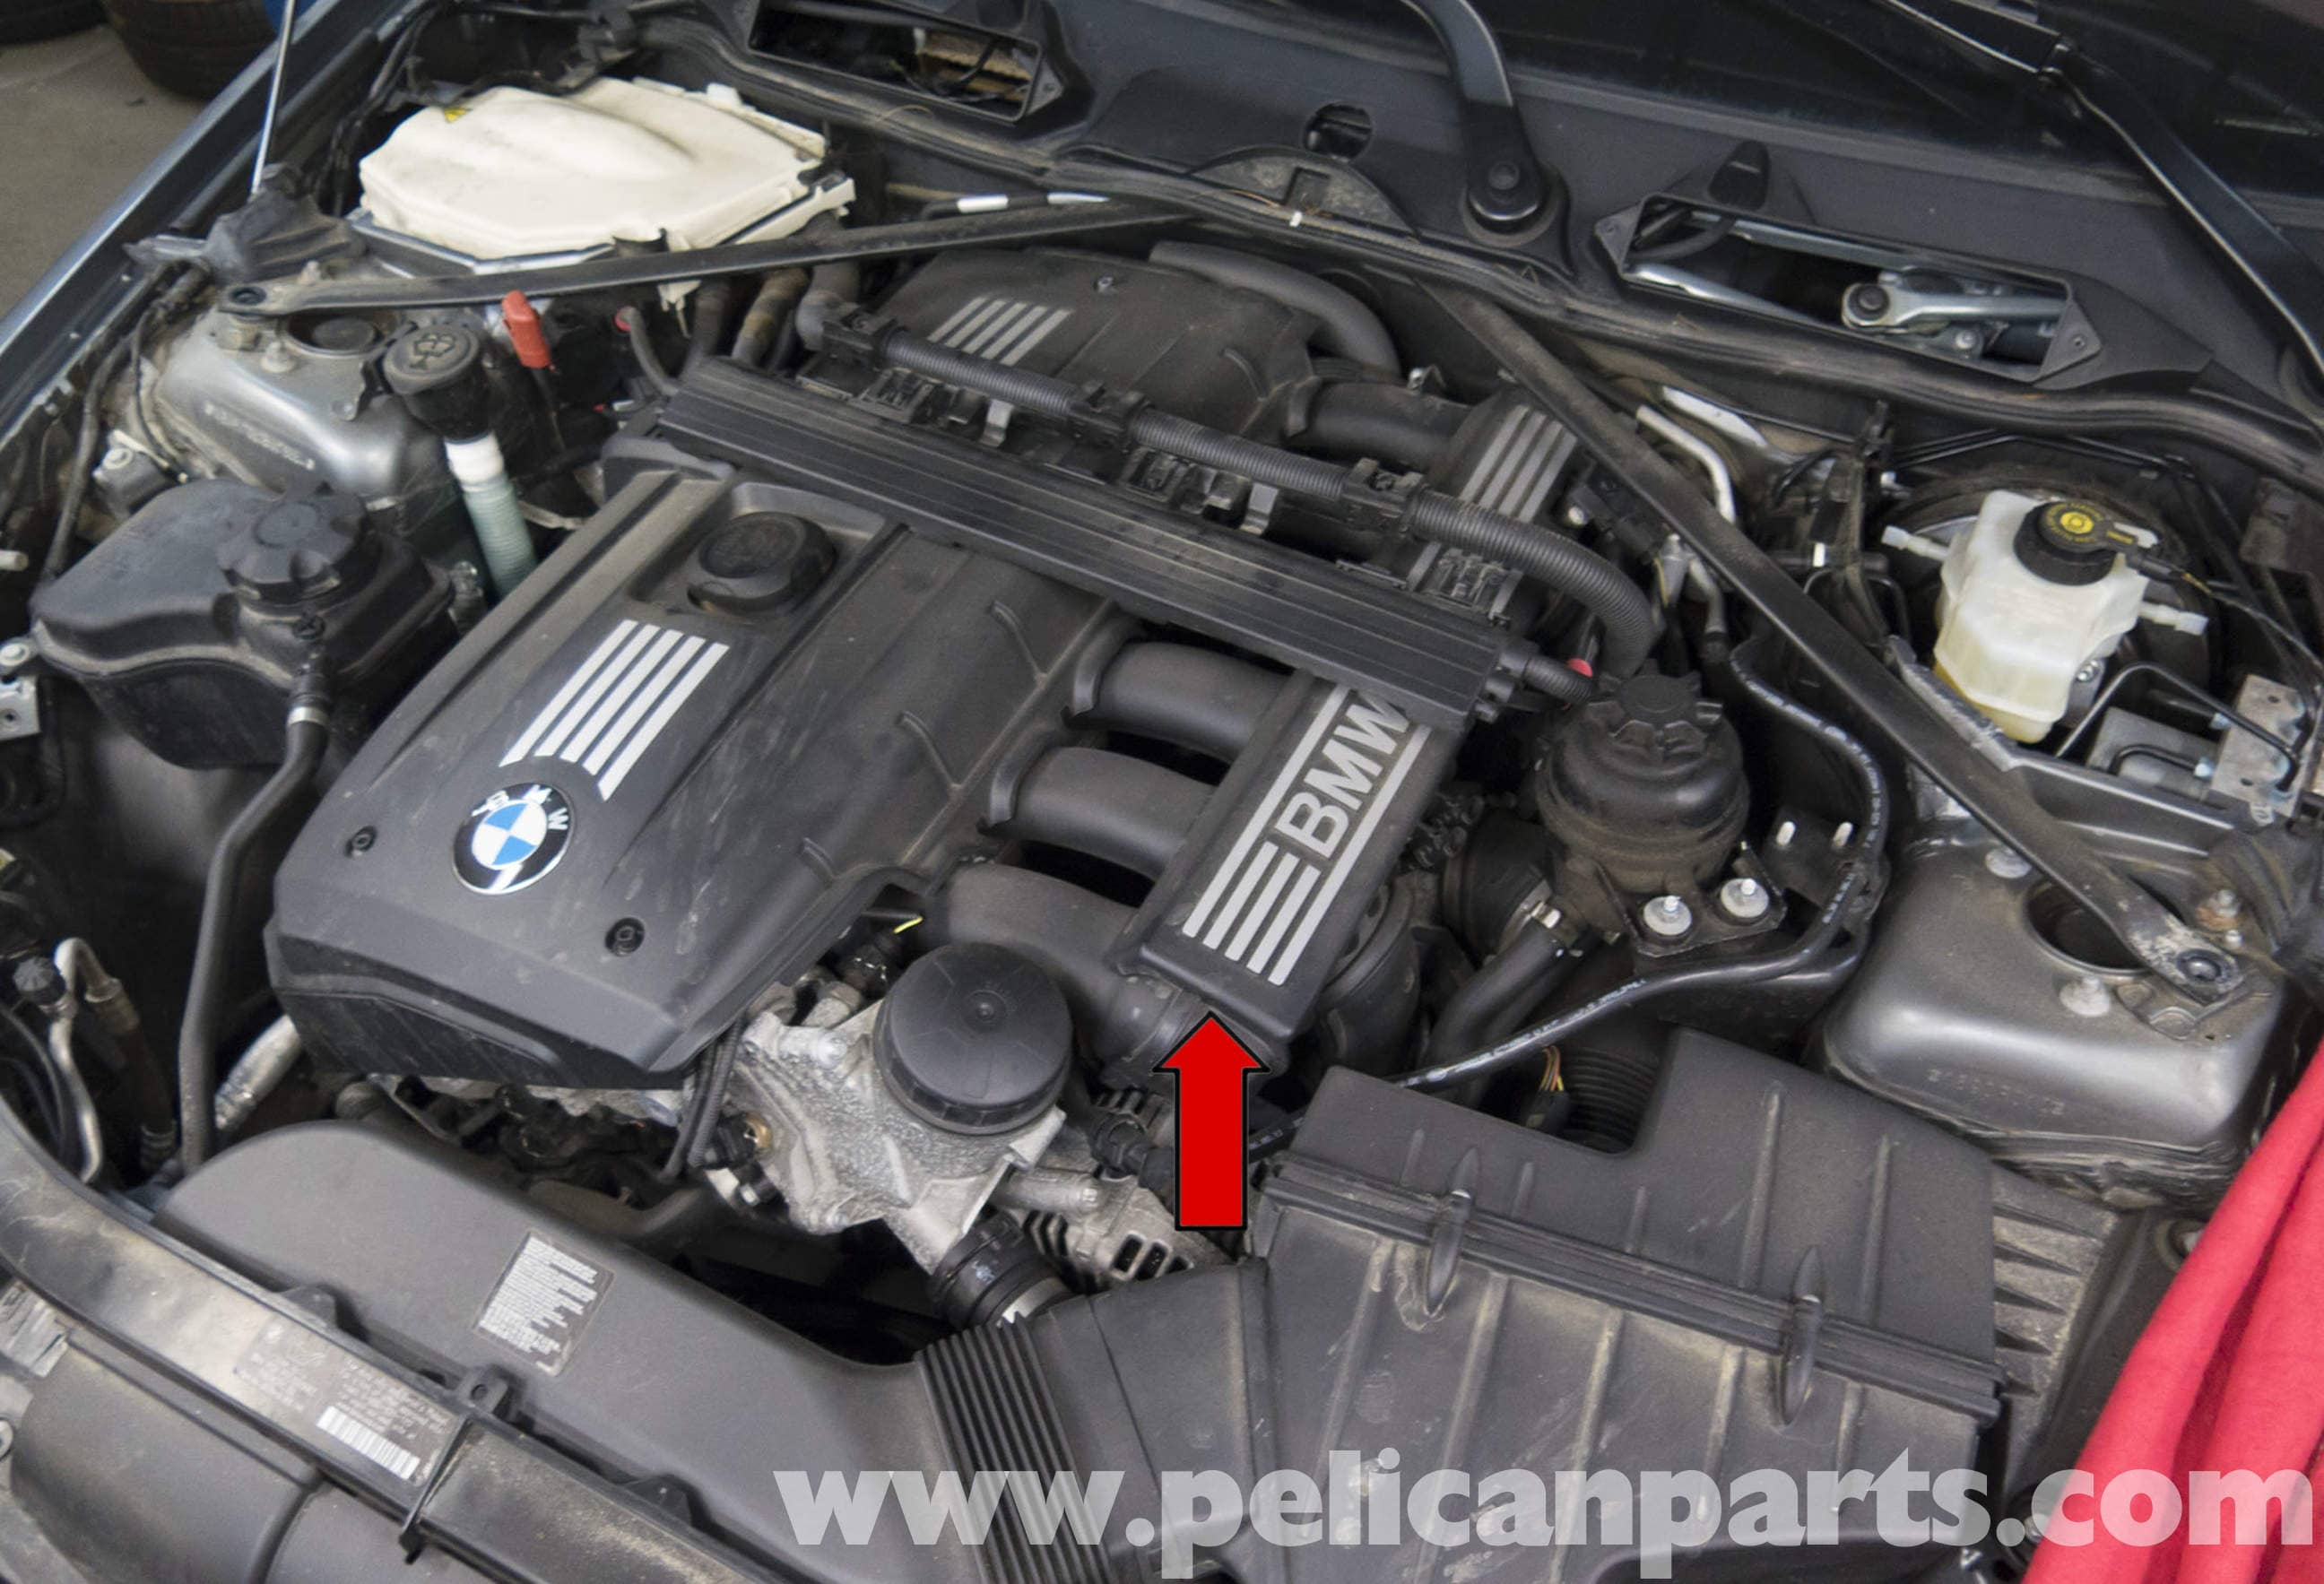 bmw e60 5 series n52 engine intake manifold upgrade. Black Bedroom Furniture Sets. Home Design Ideas